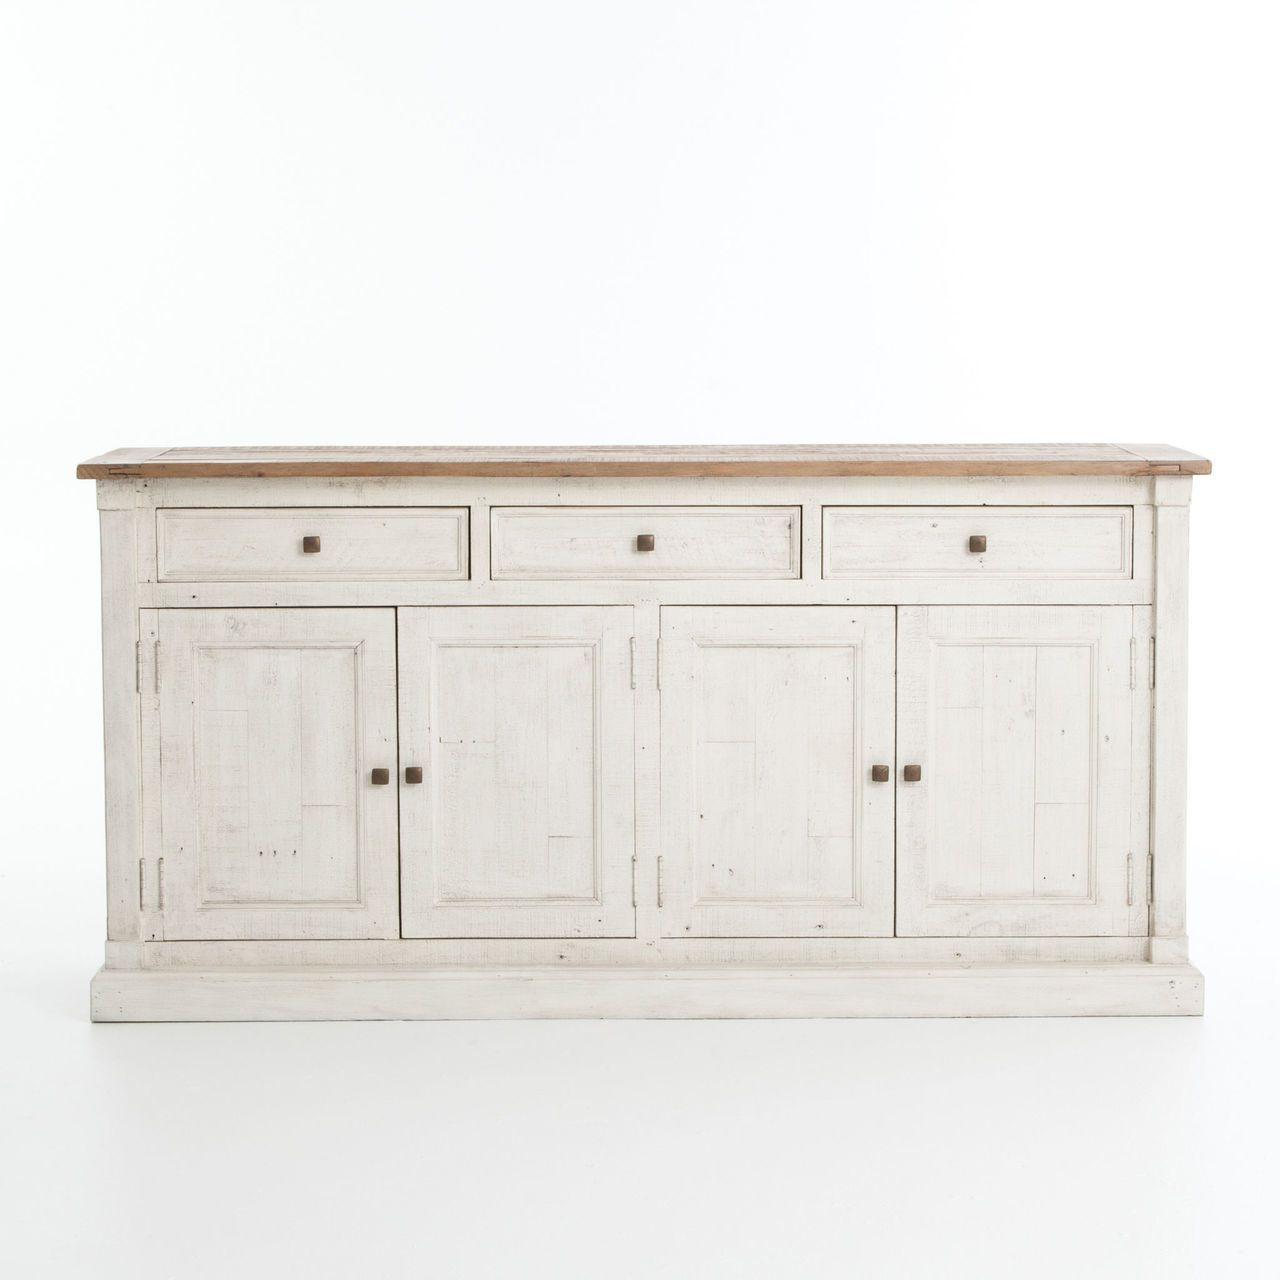 Cintra Reclaimed Wood White Sideboard Buffet | Dining Room With Regard To Payton Serving Sideboards (View 5 of 20)